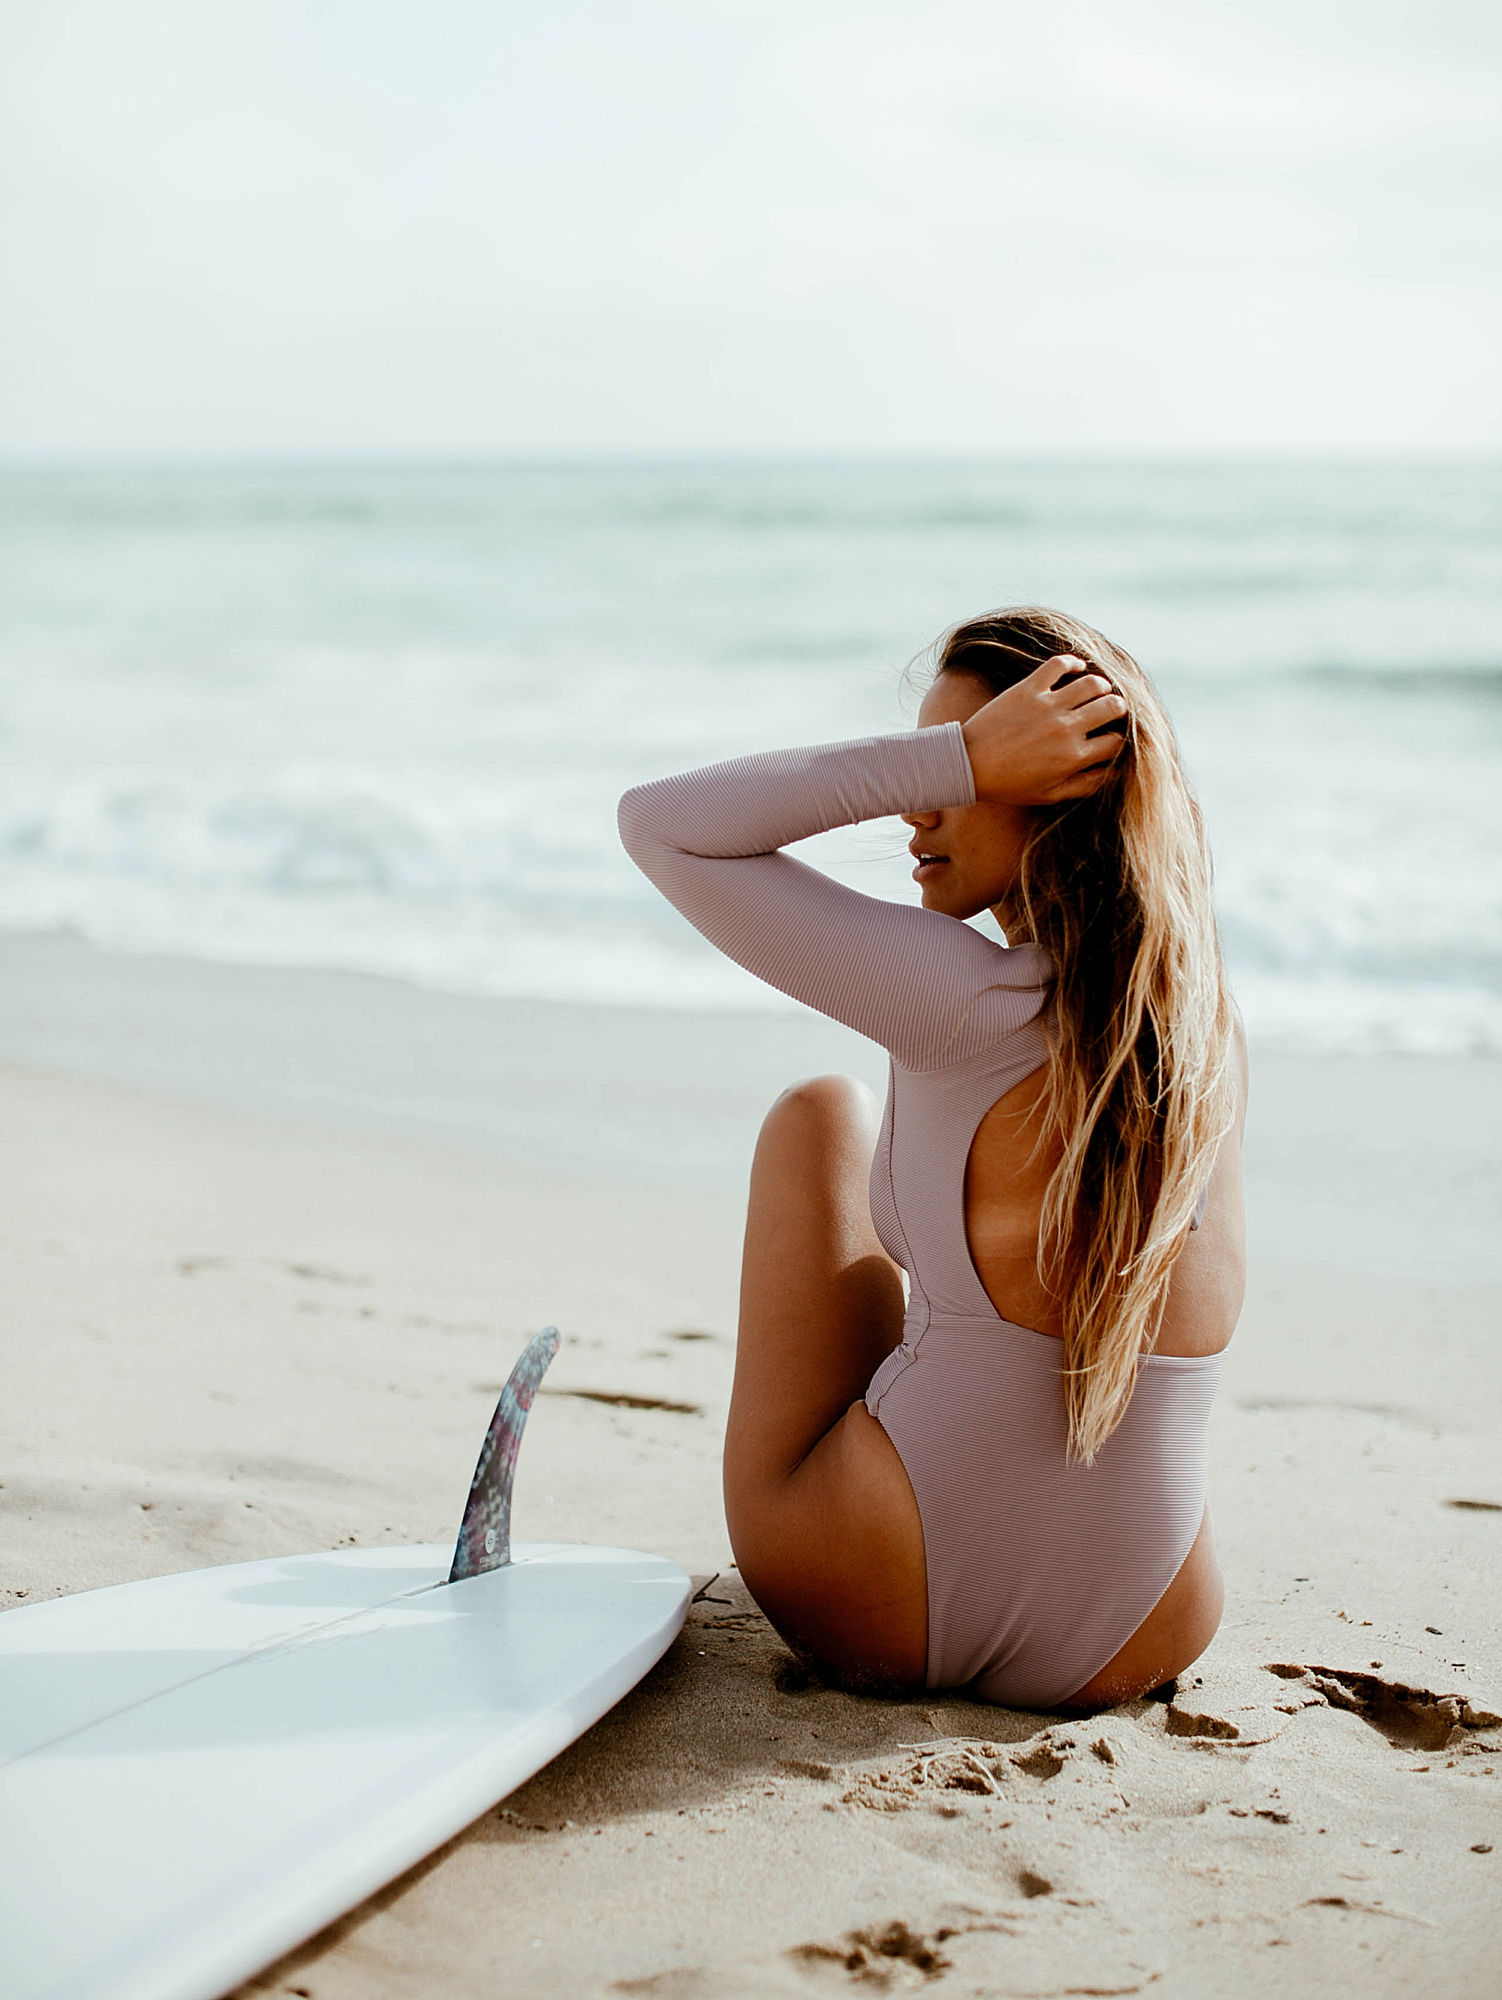 Southern California Surf and Lifestyle Fashion Photographer Kelee Bovelle @keleeb X Eryn Krouse @erynkrouse_0011.jpg